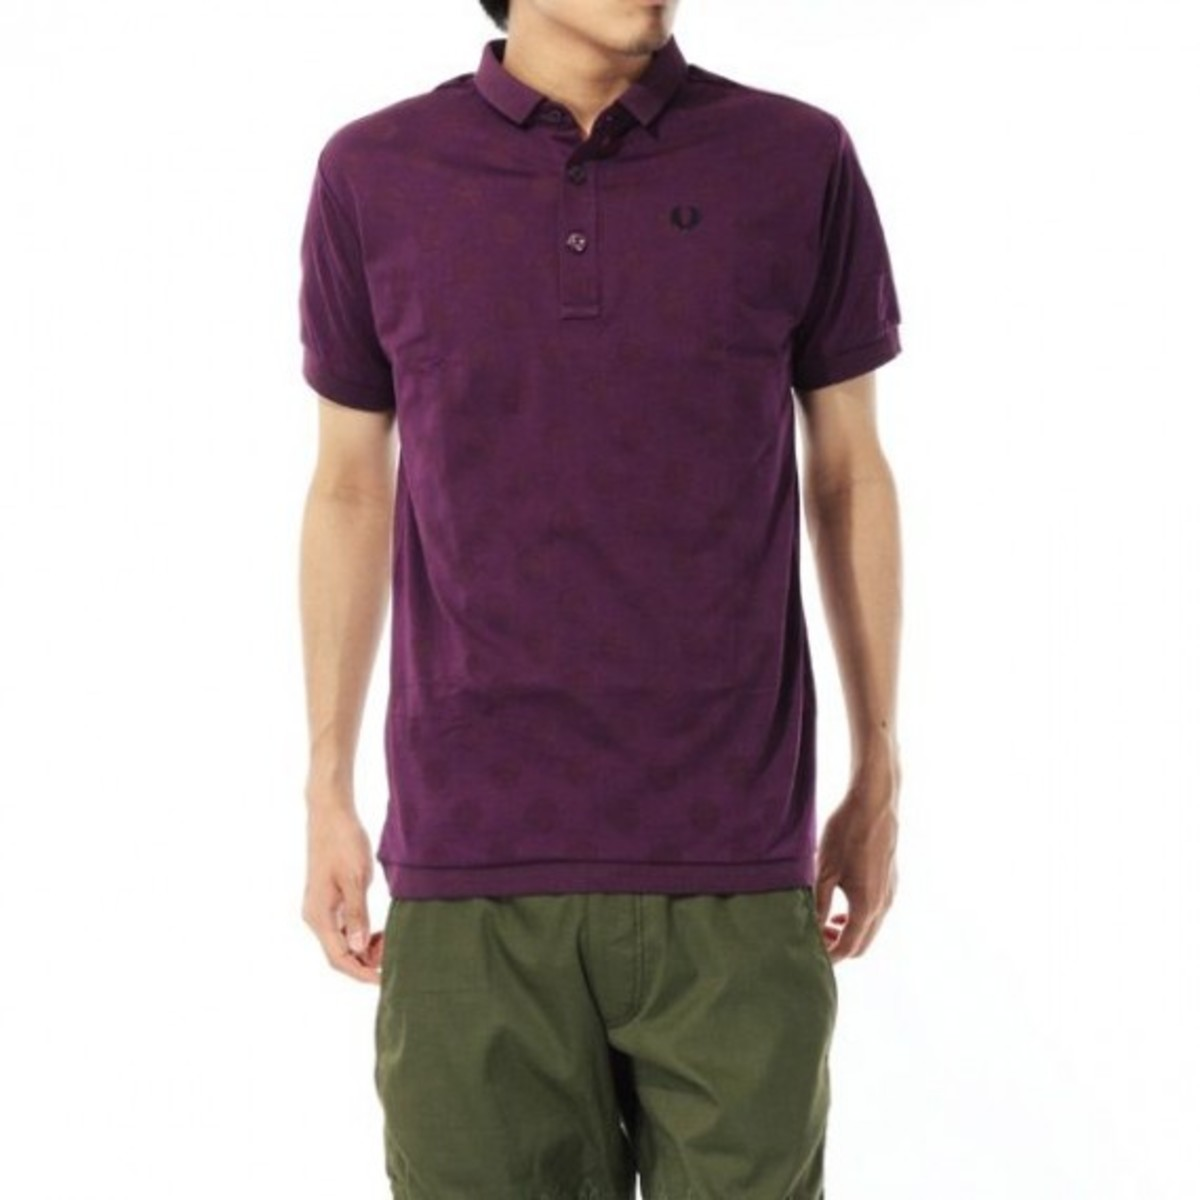 dot-polo-shirt-04